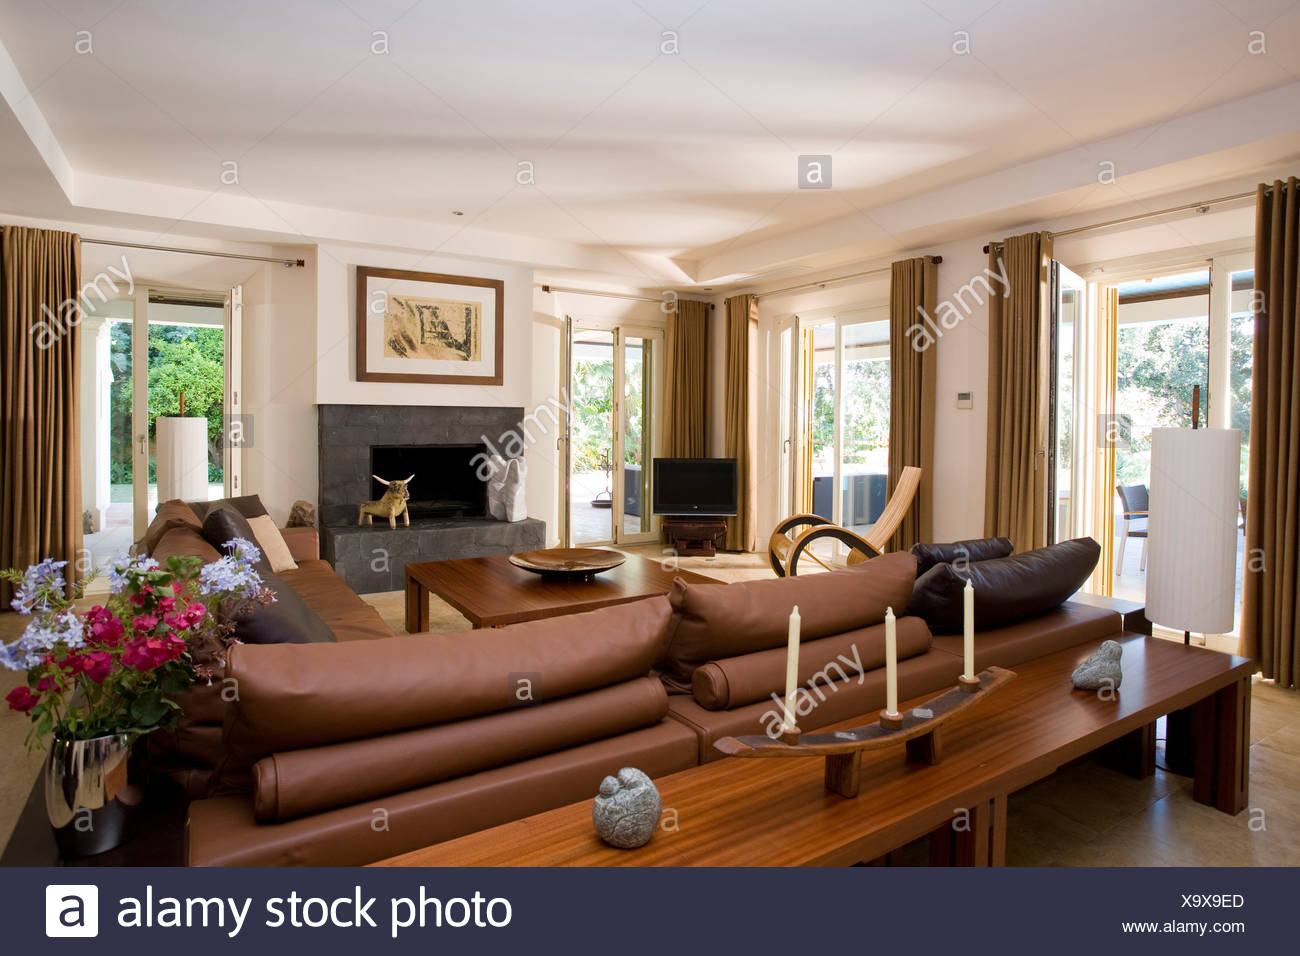 Brown and cream colour scheme with slate fireplace make for a ...